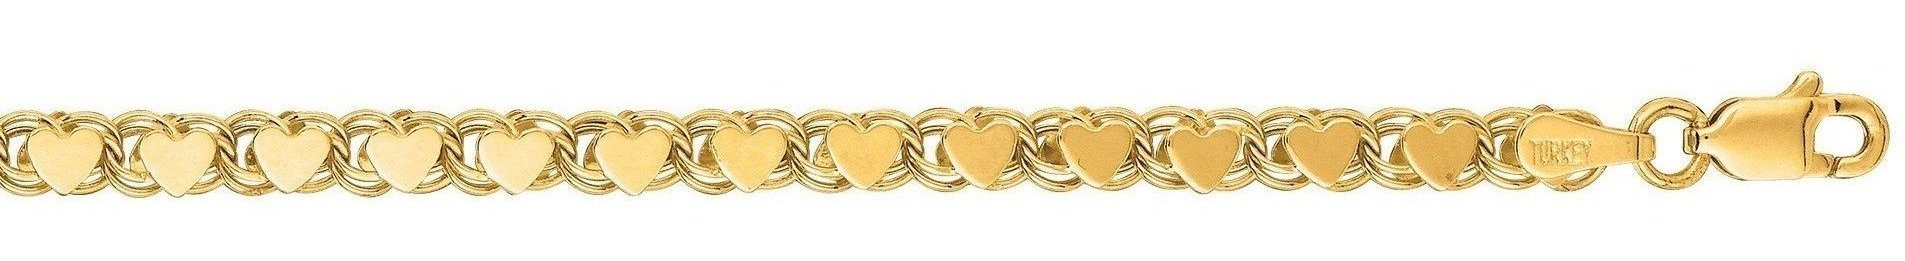 "10"" 14K Yellow Gold 3.3mm (1/8"") Polished Diamond Cut Heart Chain w/ Lobster Clasp"